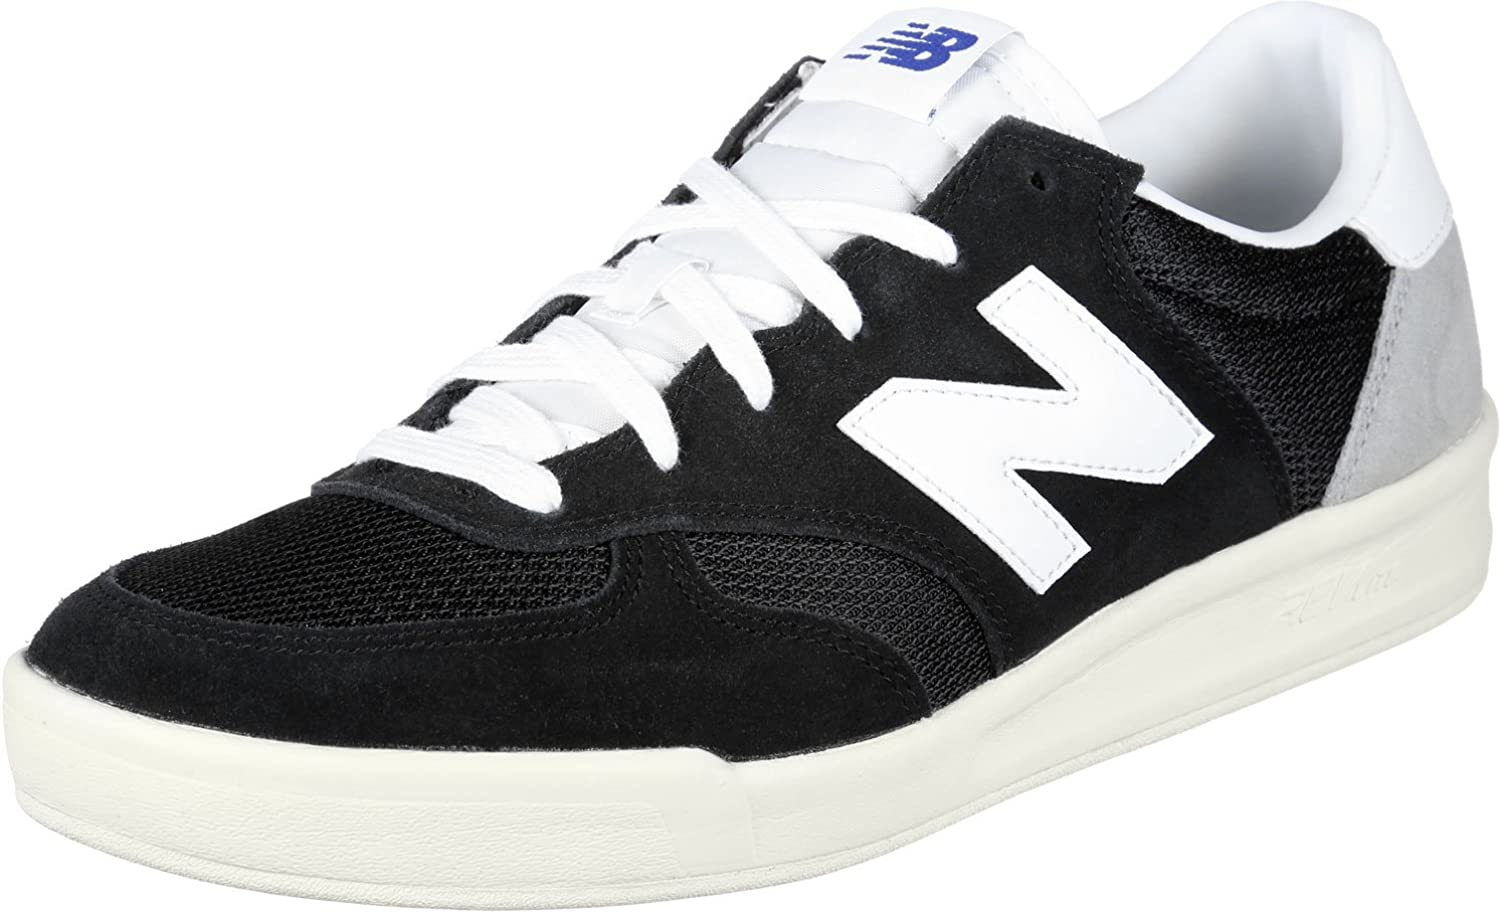 New Balance Unisex Adults' Crt300-fo-d Low-Top Sneakers